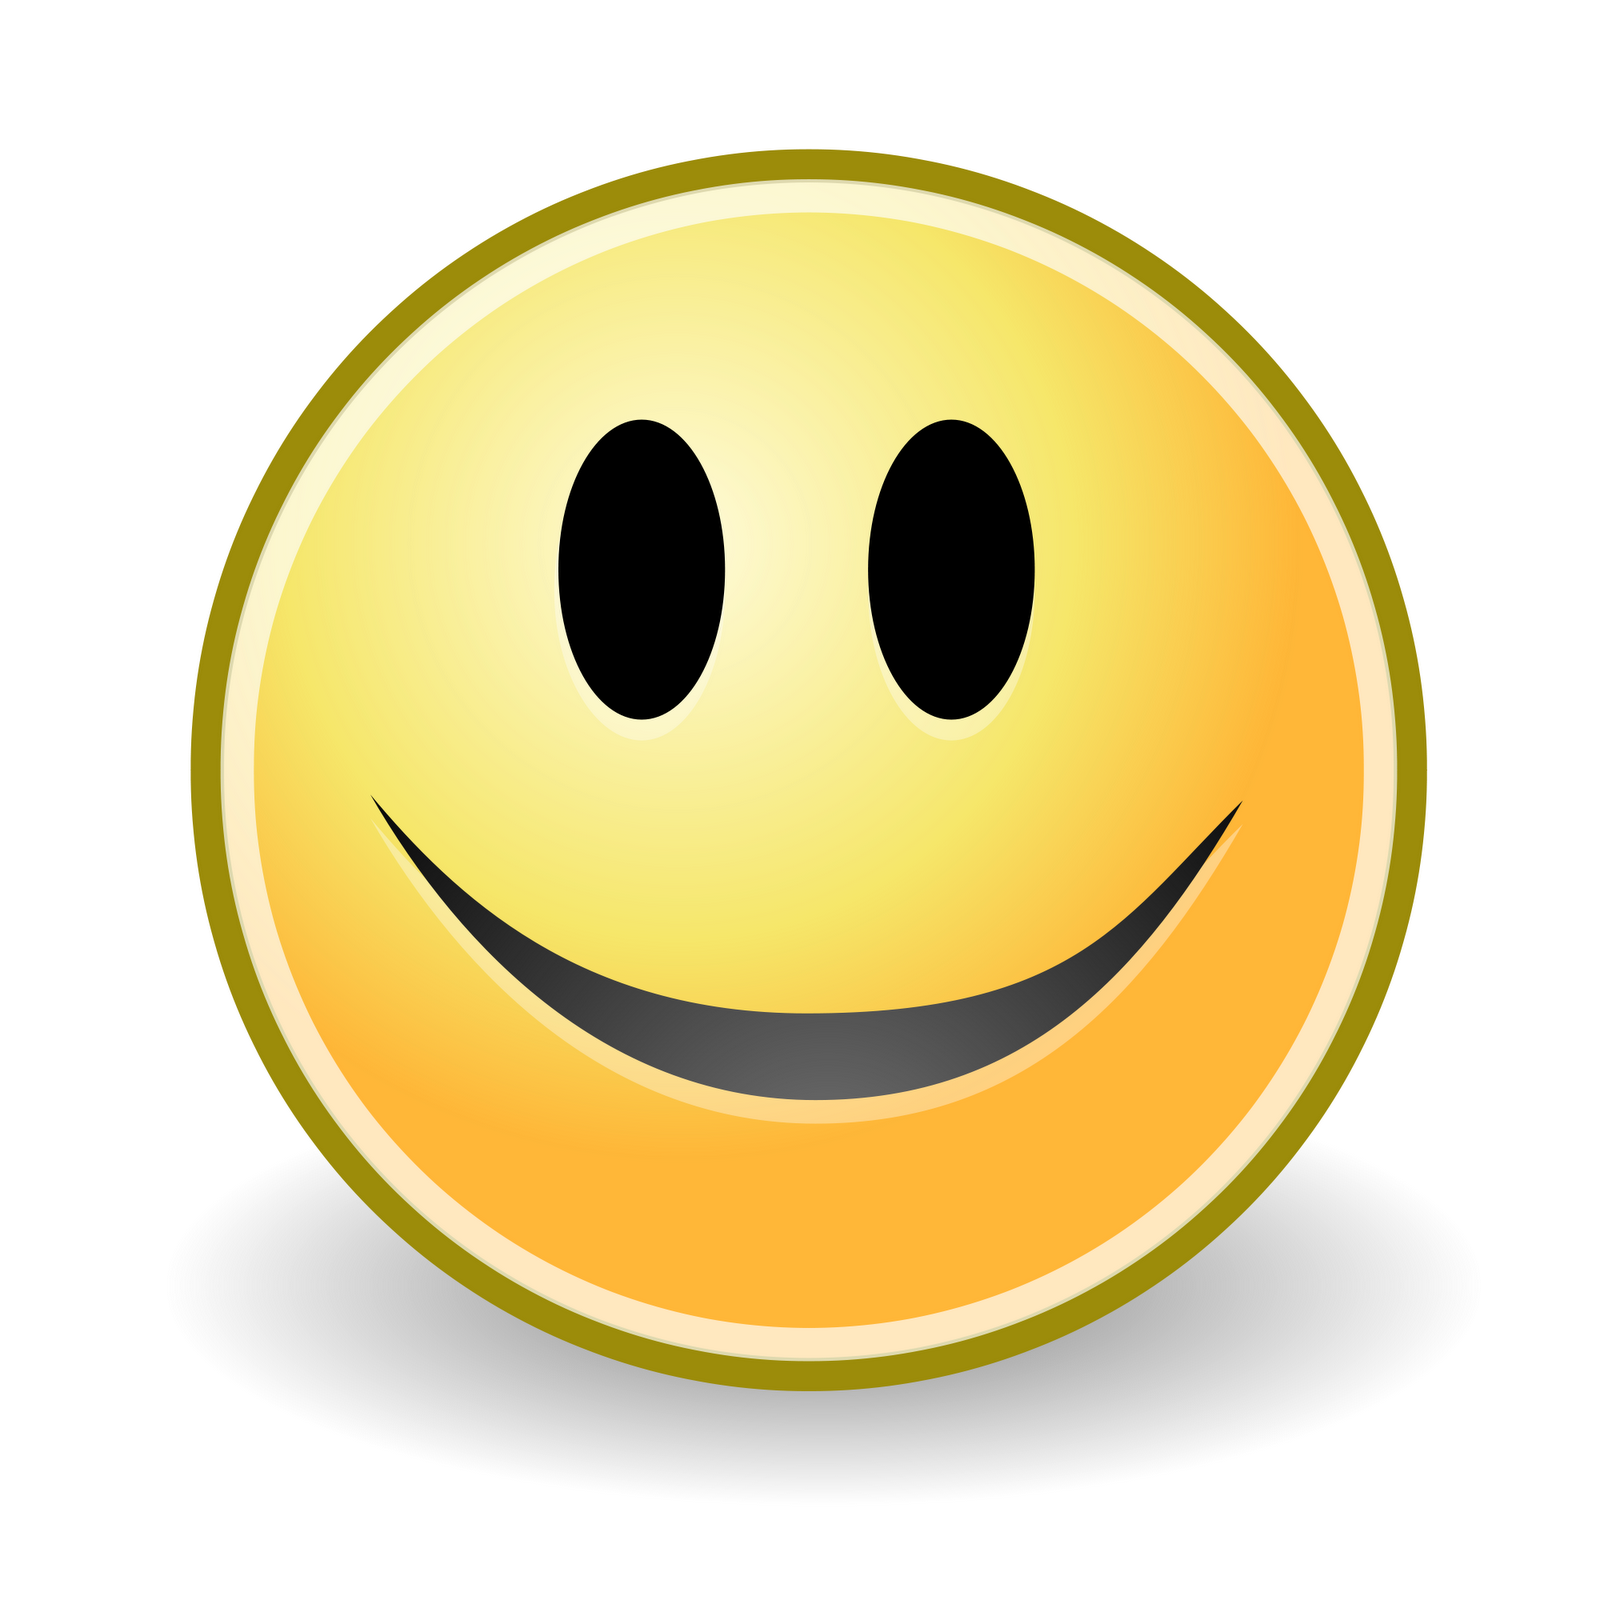 Happy Face Image - ClipArt Best